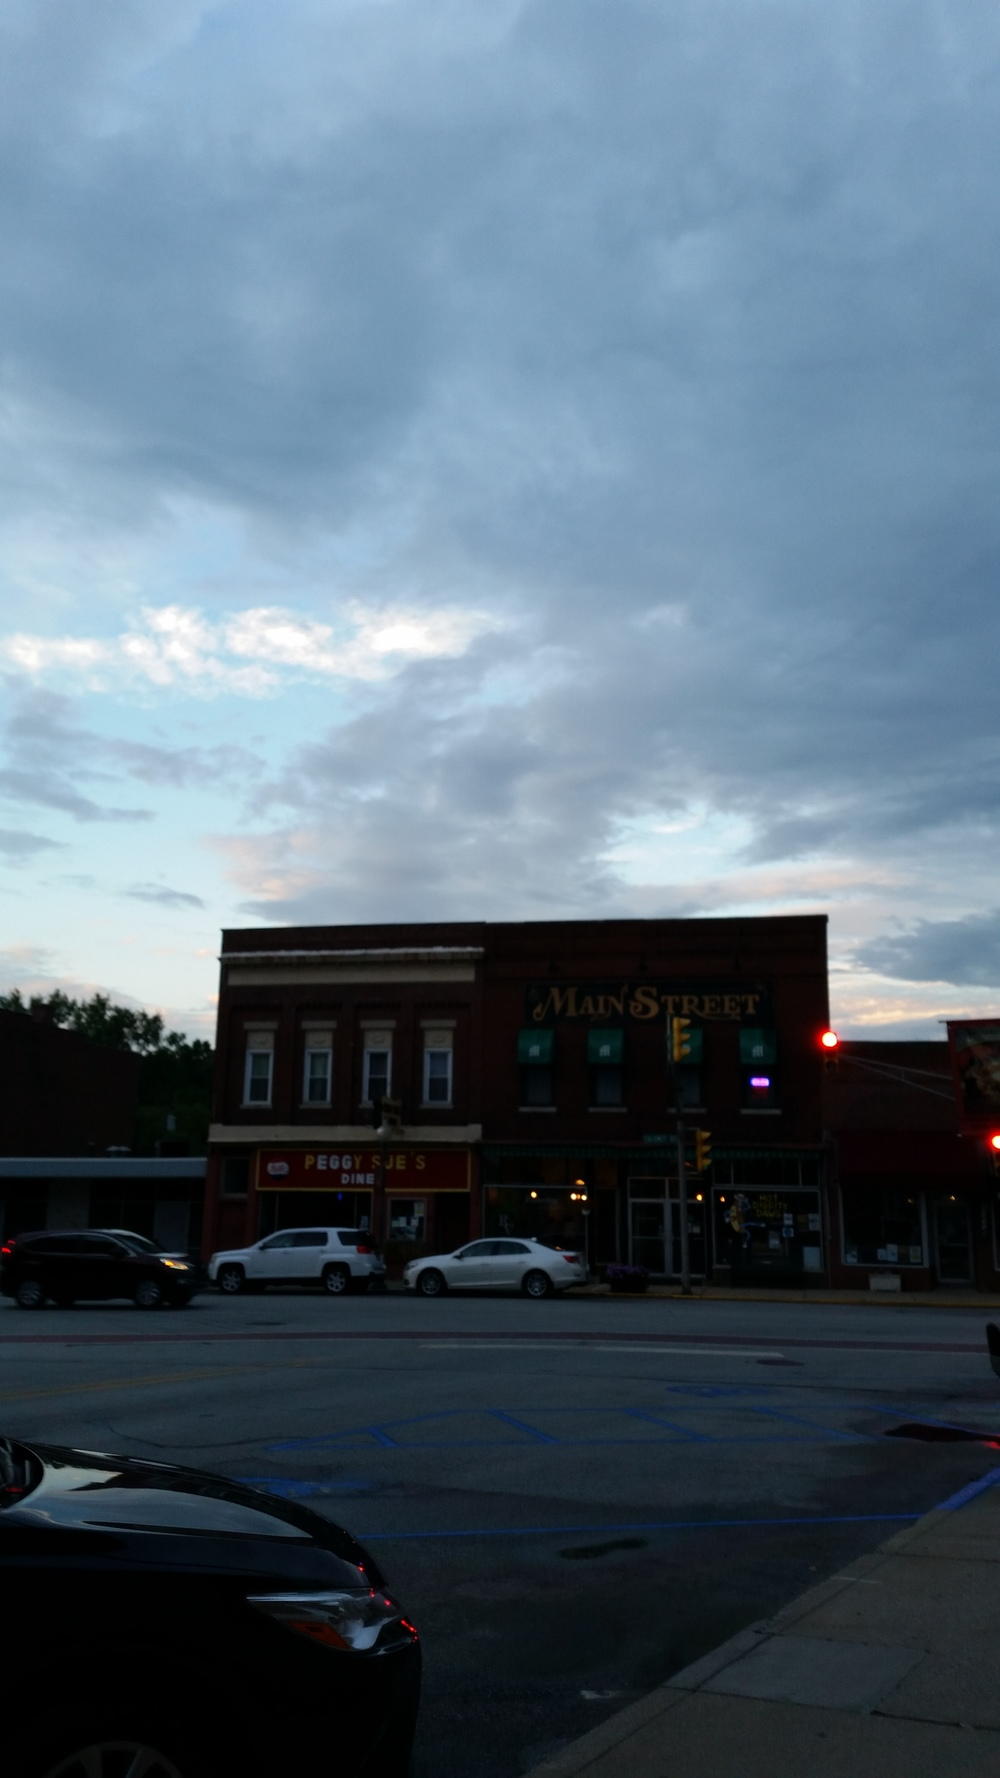 Downtown Chesterton, Indiana